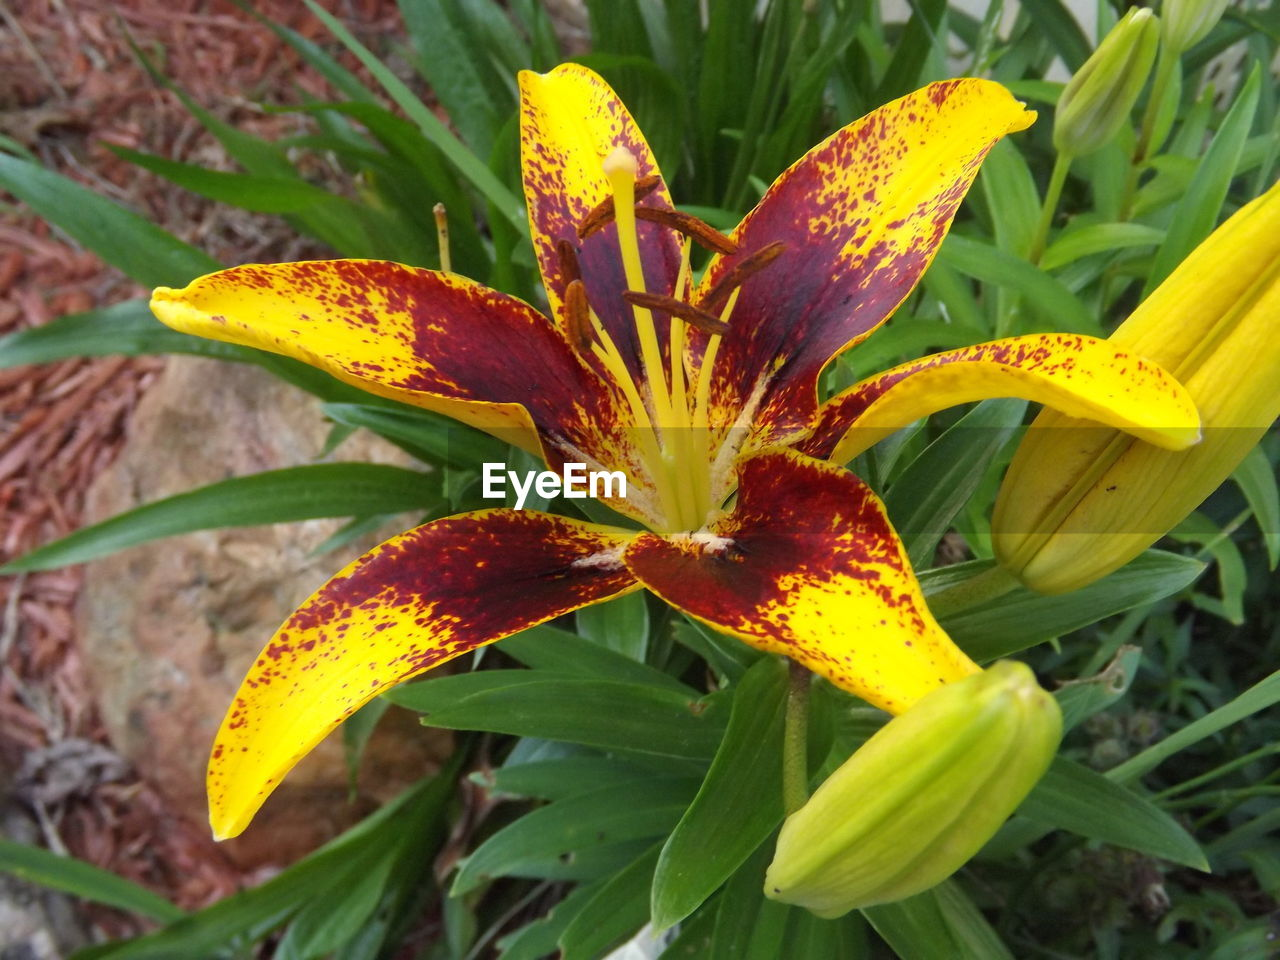 flower, growth, petal, flower head, fragility, freshness, close-up, nature, outdoors, beauty in nature, day, yellow, plant, no people, stamen, blooming, day lily